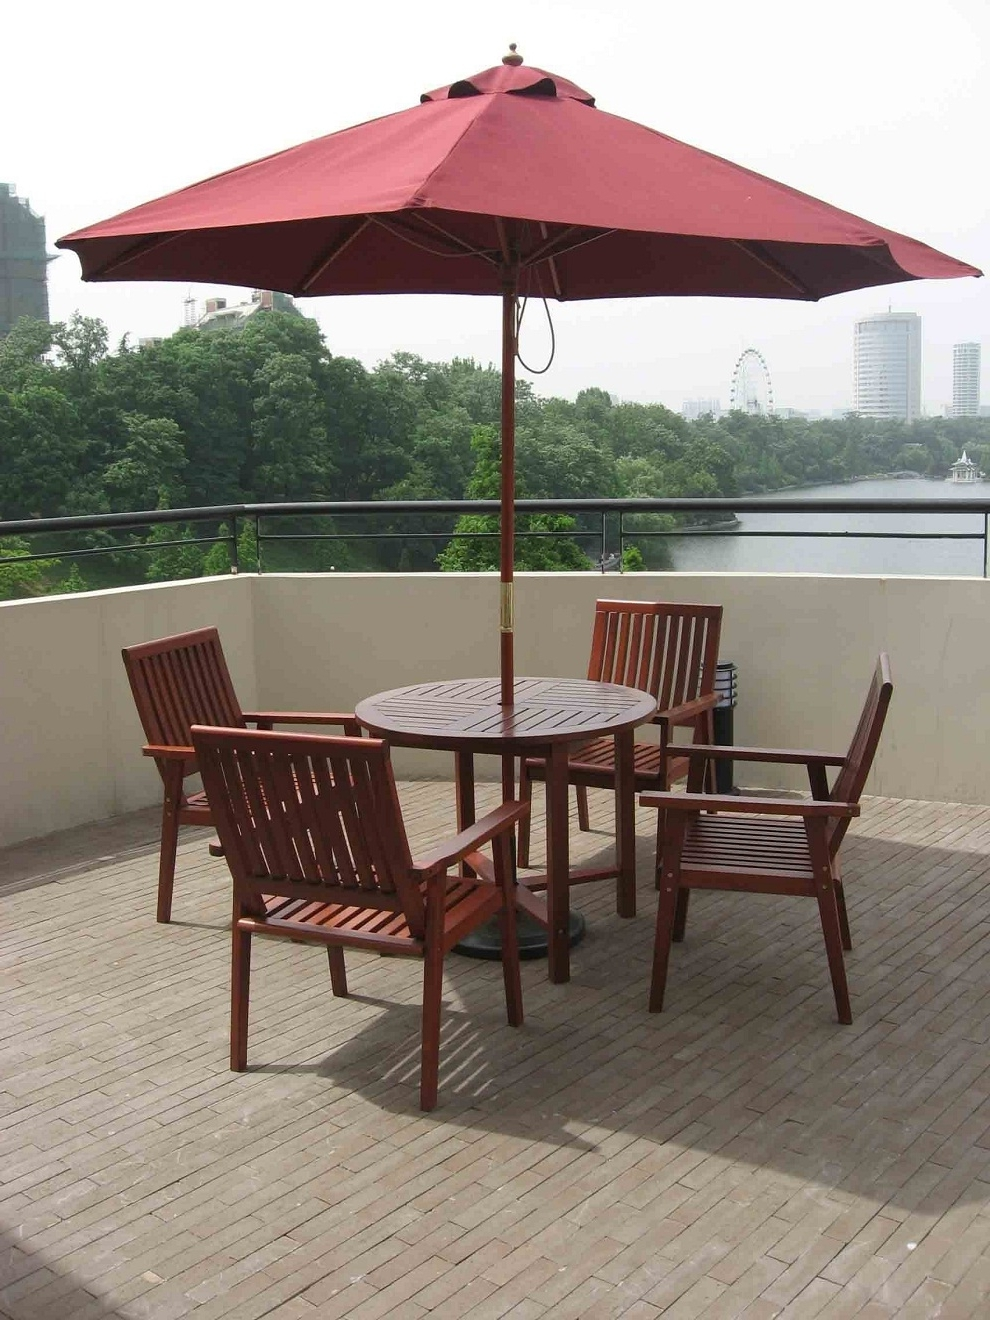 Patio Surprising Table With Umbrella Small Tables For Rent In Los Inside Most Popular Patio Umbrellas For Rent (View 10 of 20)